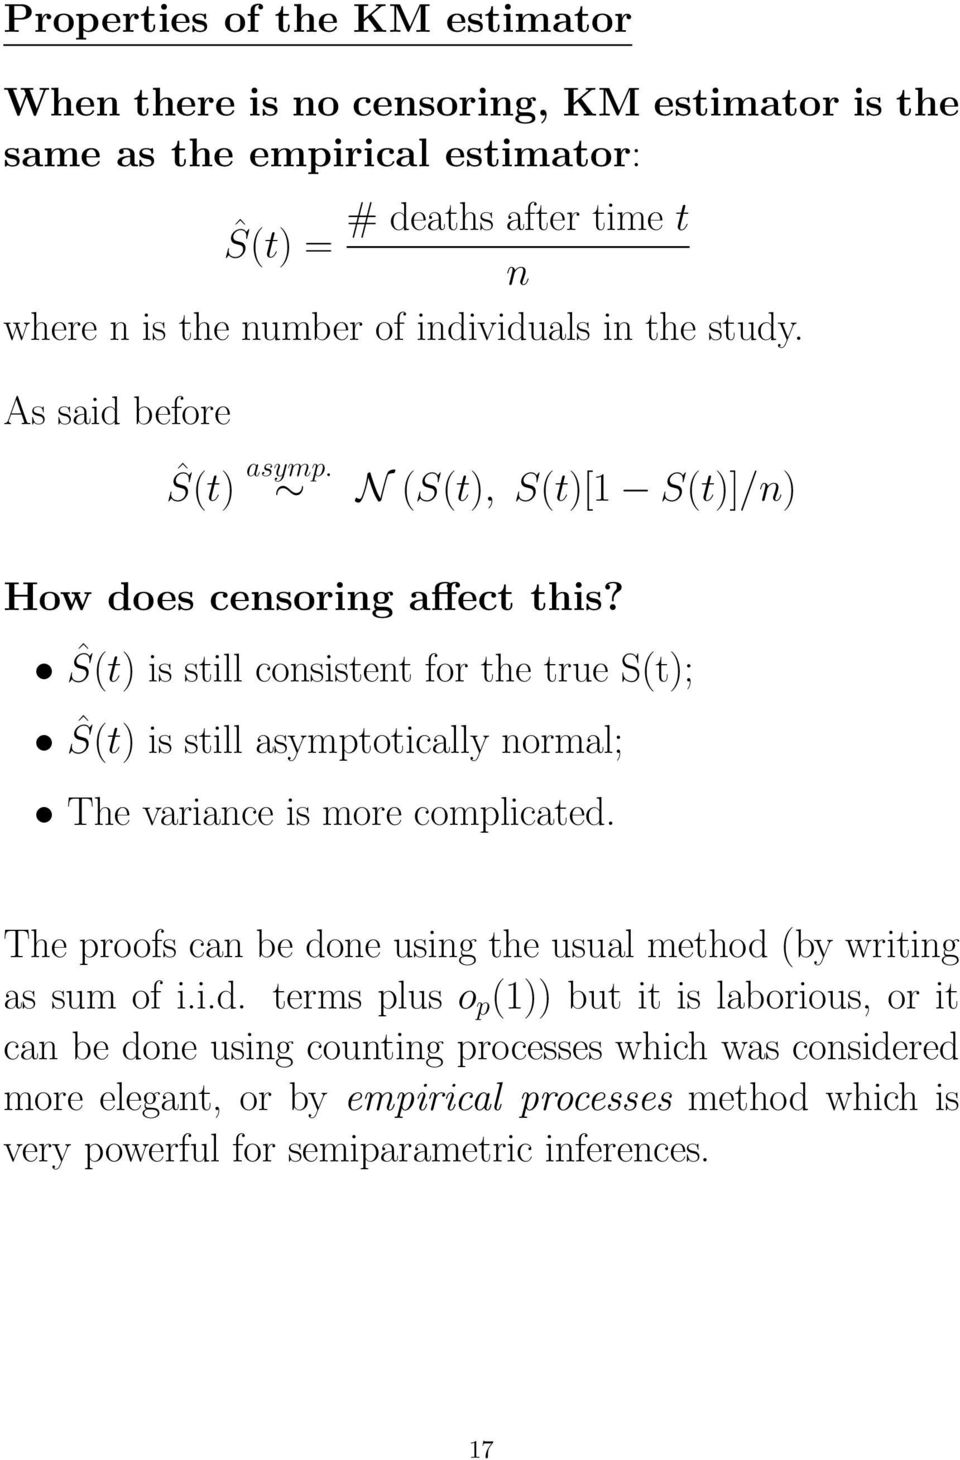 Ŝ(t) is still consistent for the true S(t); Ŝ(t) is still asymptotically normal; The variance is more complicated.